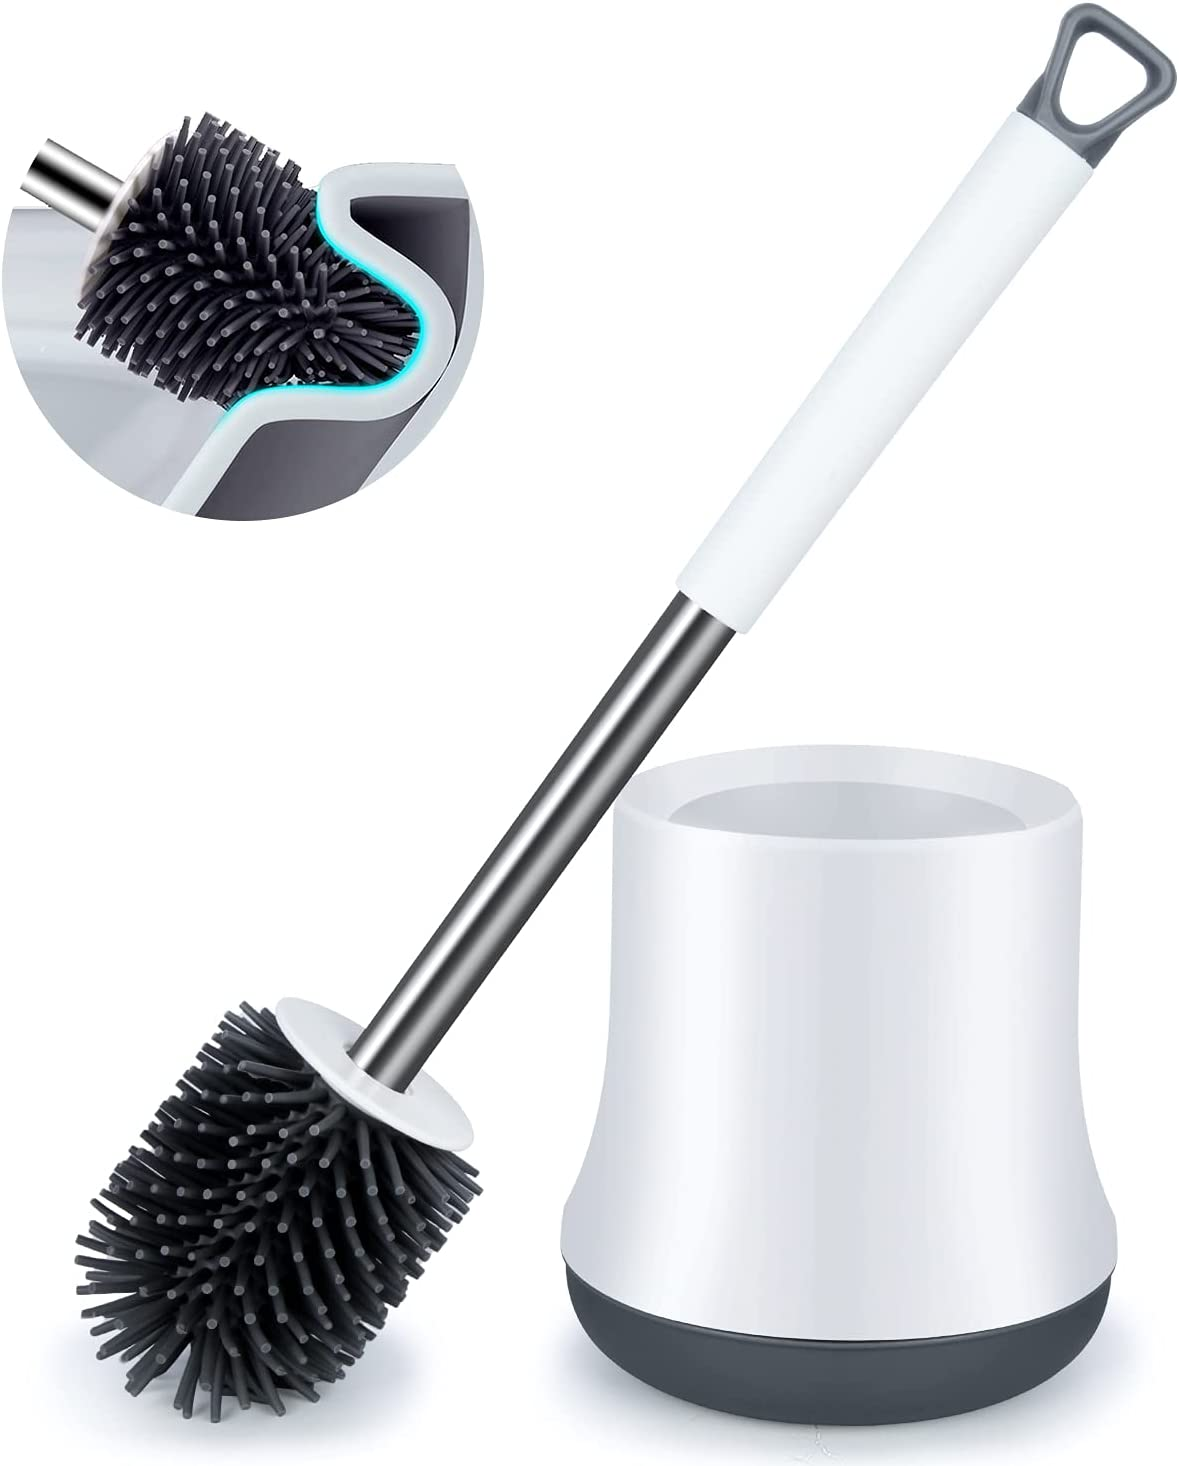 Silicone Same day shipping Toilet Bowl Brush and ENSPOWAY Set Low price Bathroom Toi Holder